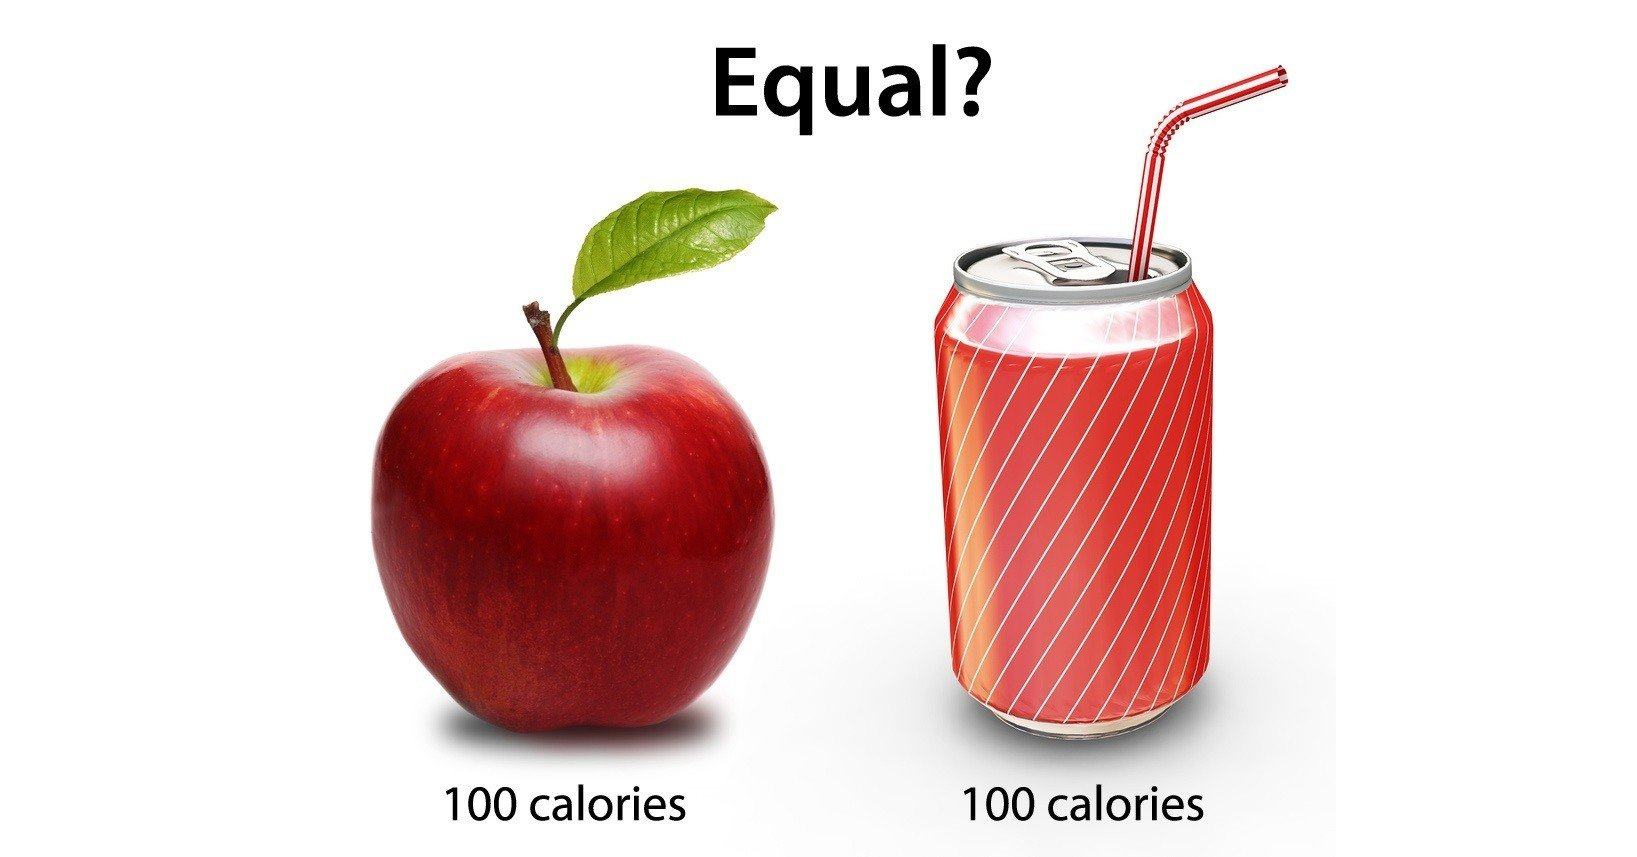 Are all calories equal?